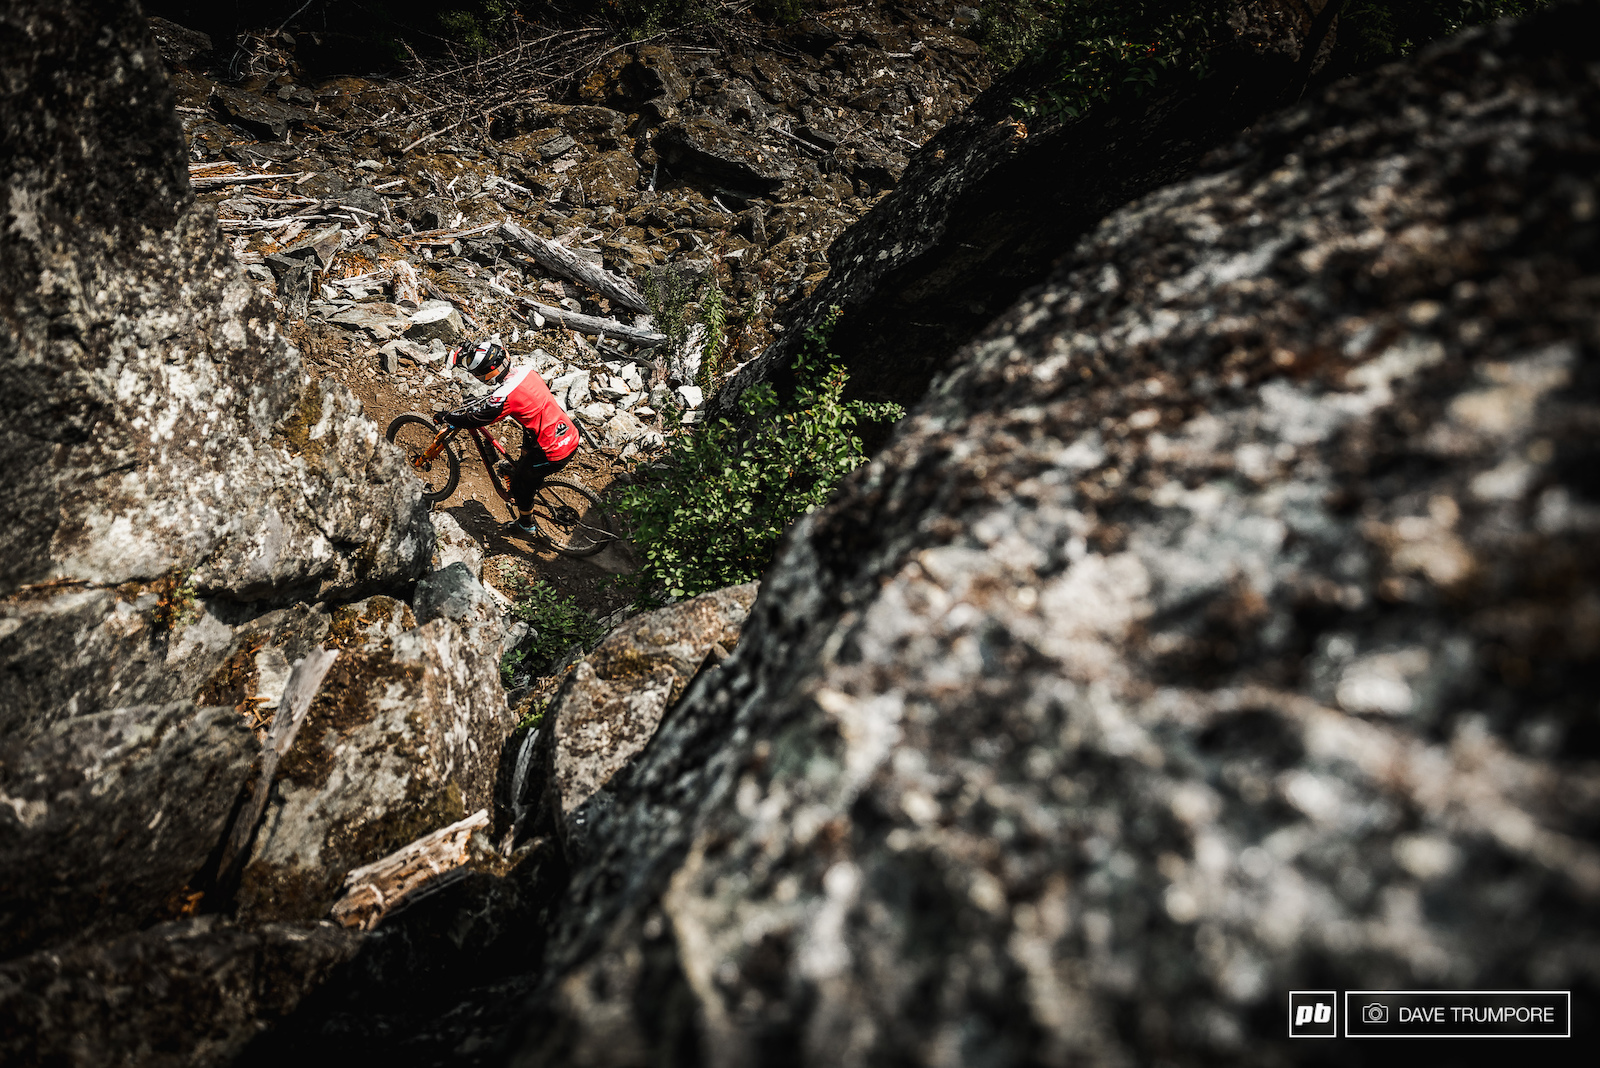 Seb Claquin through one of the many boulder fields on stage 4.